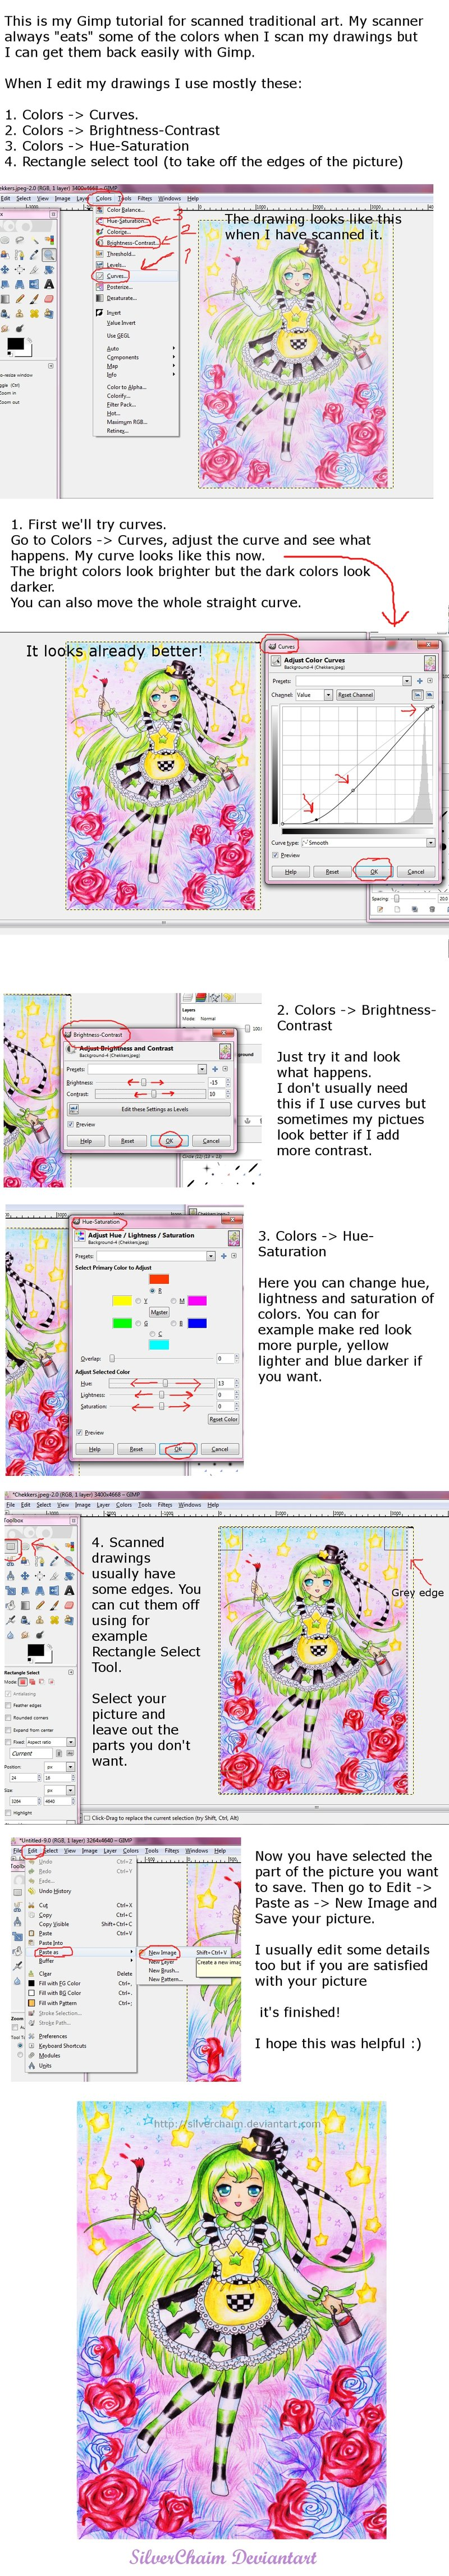 Gimp Tutorial For Scanned Drawings By Silverchaim On Deviantart Gimp Tutorial Gimp Drawings